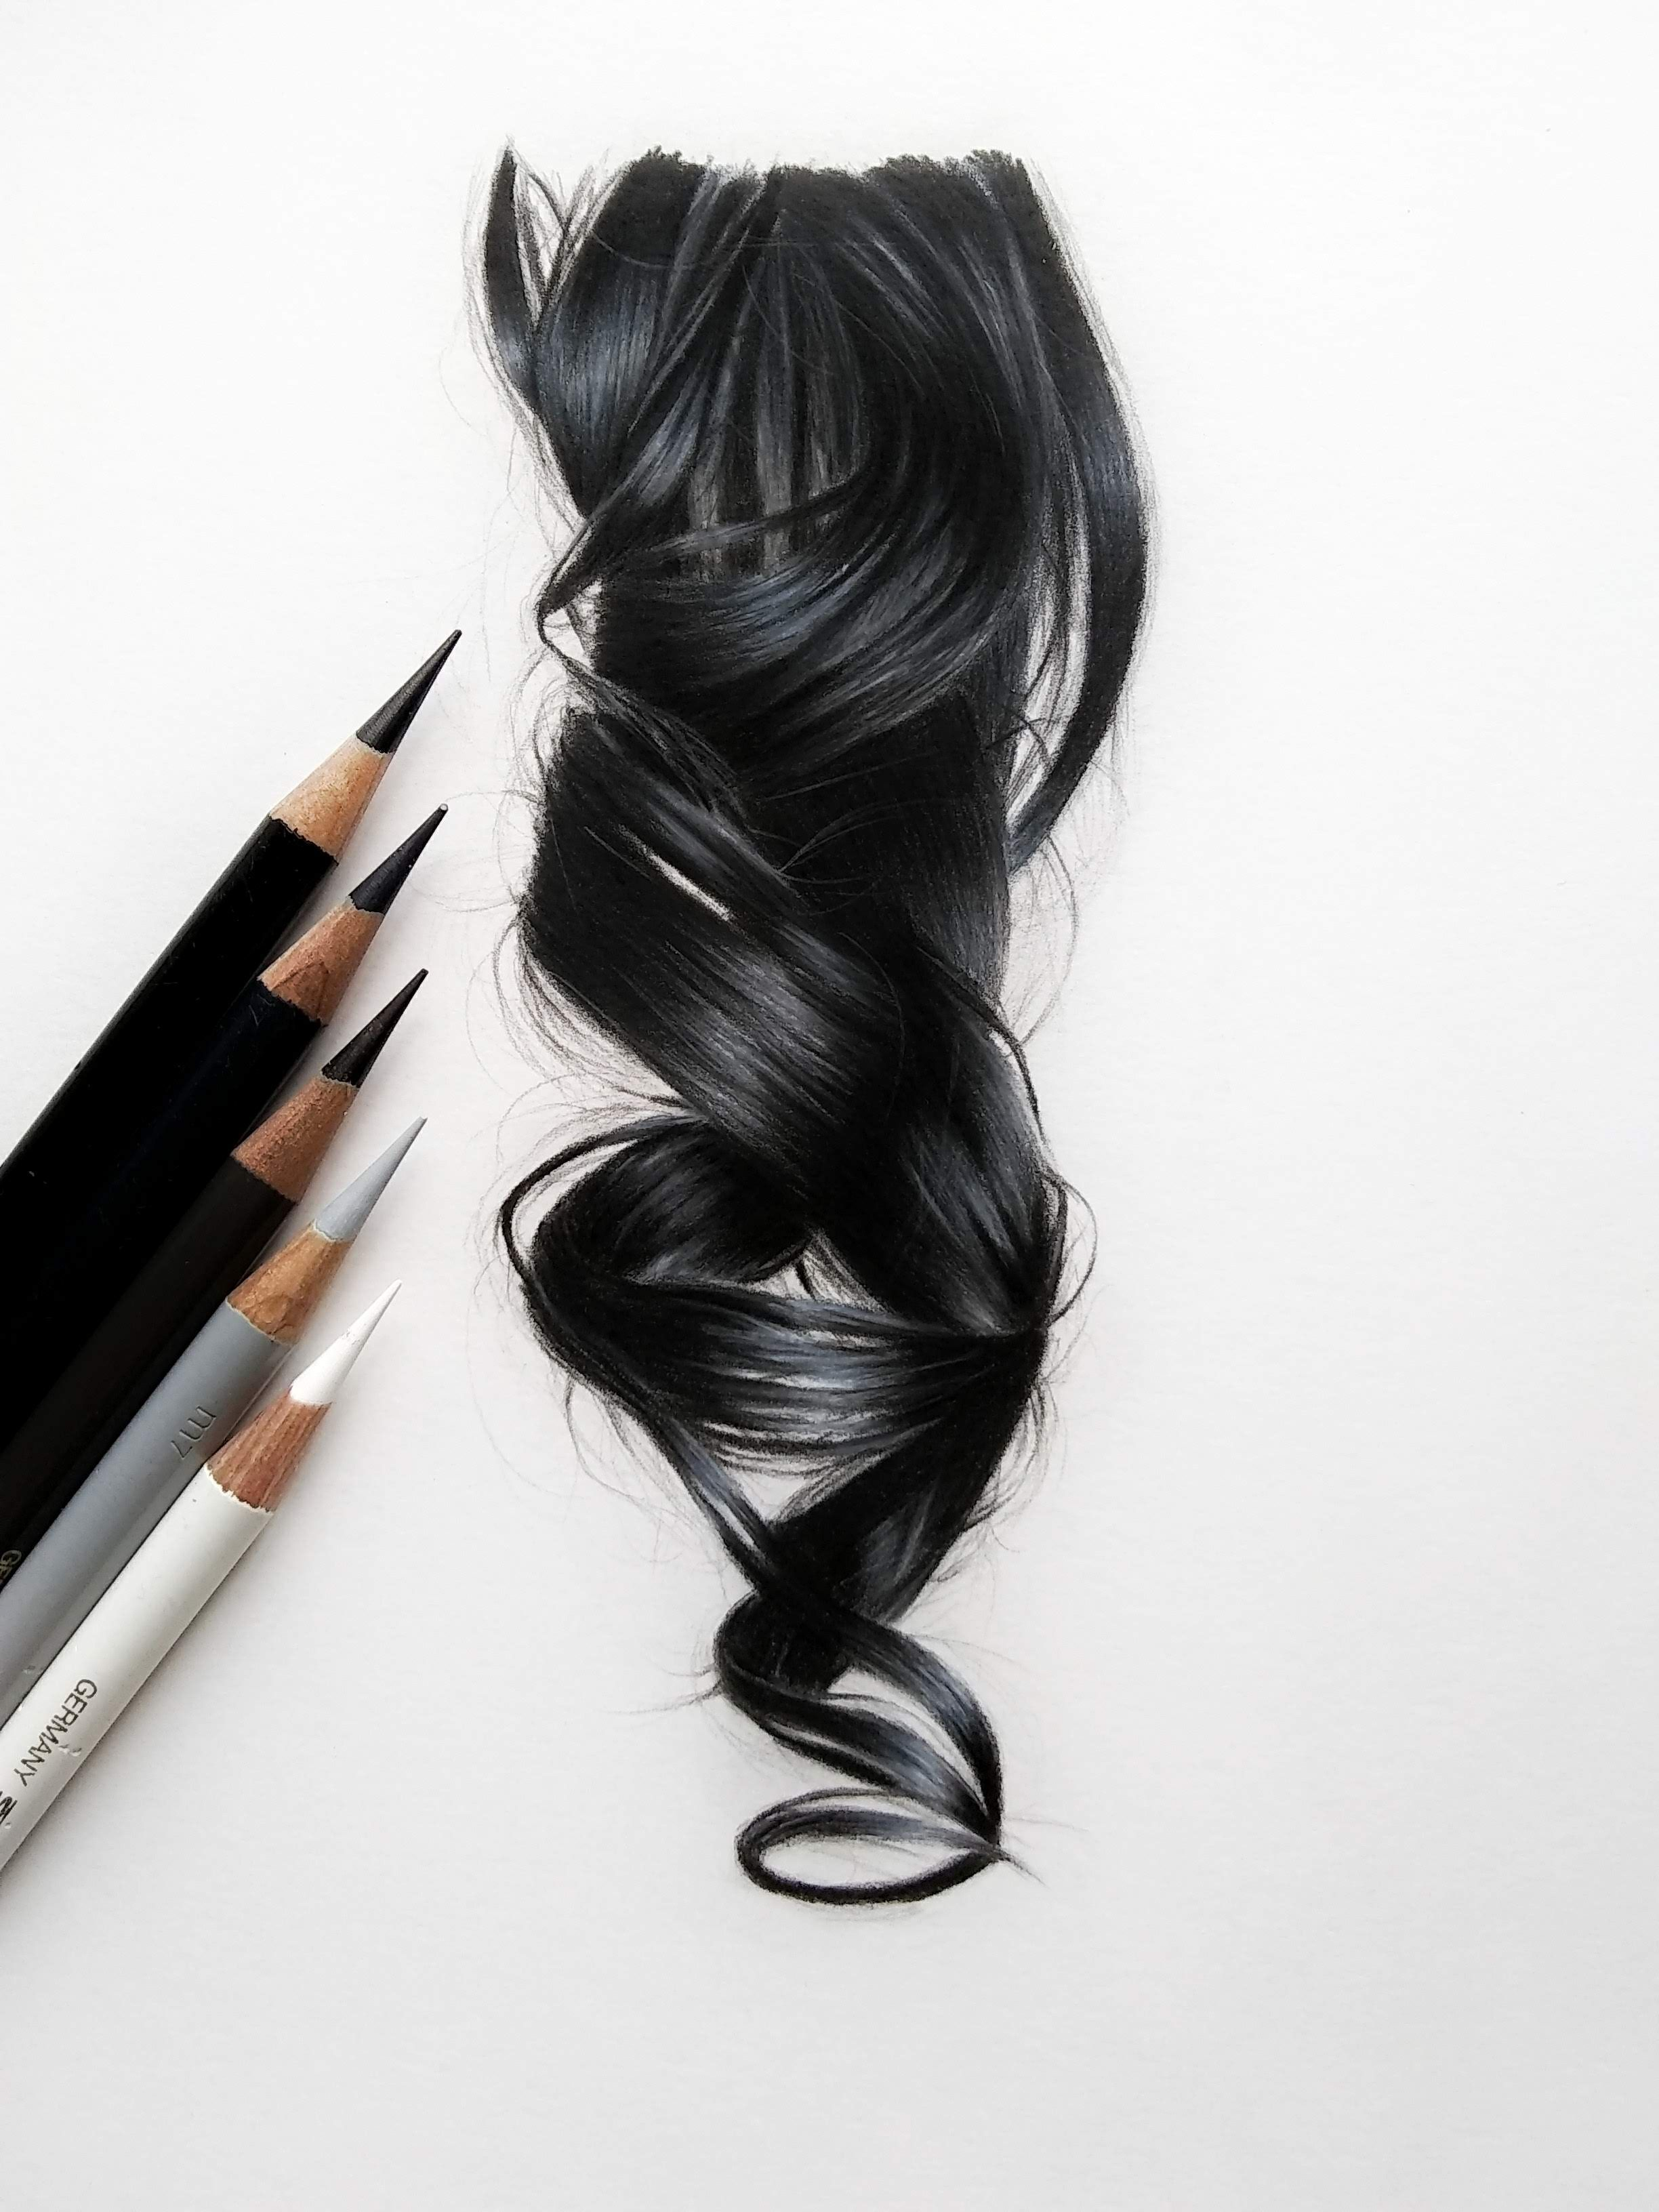 How To Draw Black Hair With Colored Pencils How To Draw Hair Hair Color For Black Hair Hair Painting